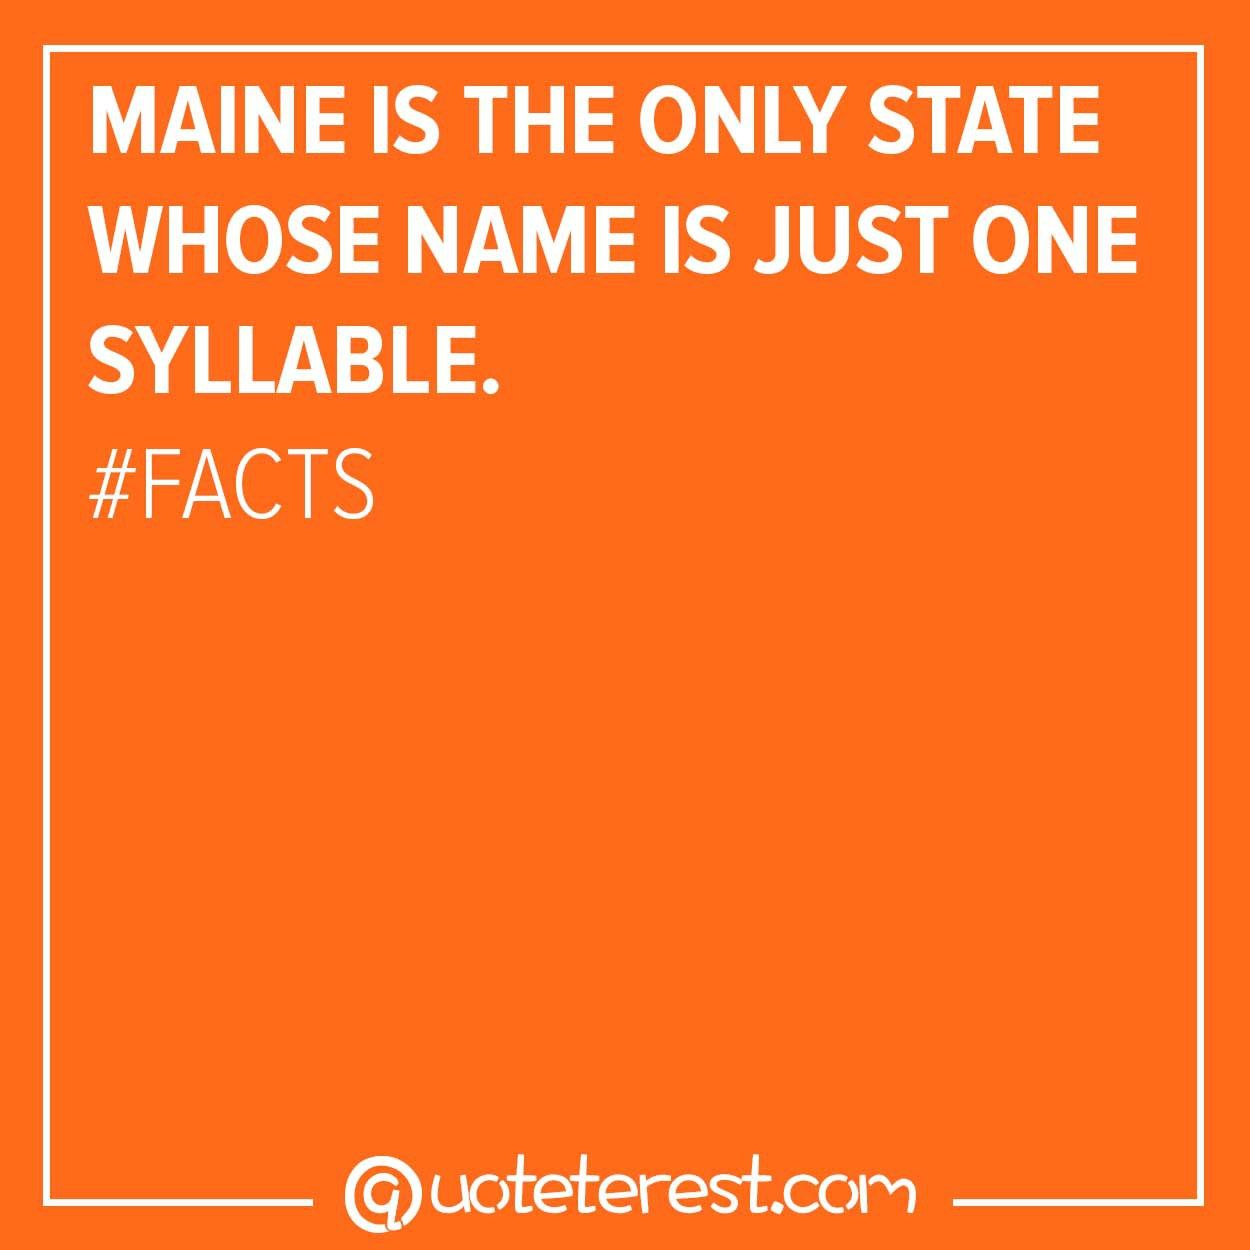 Maine Is The Only State Whose Name Is Just One Syllable